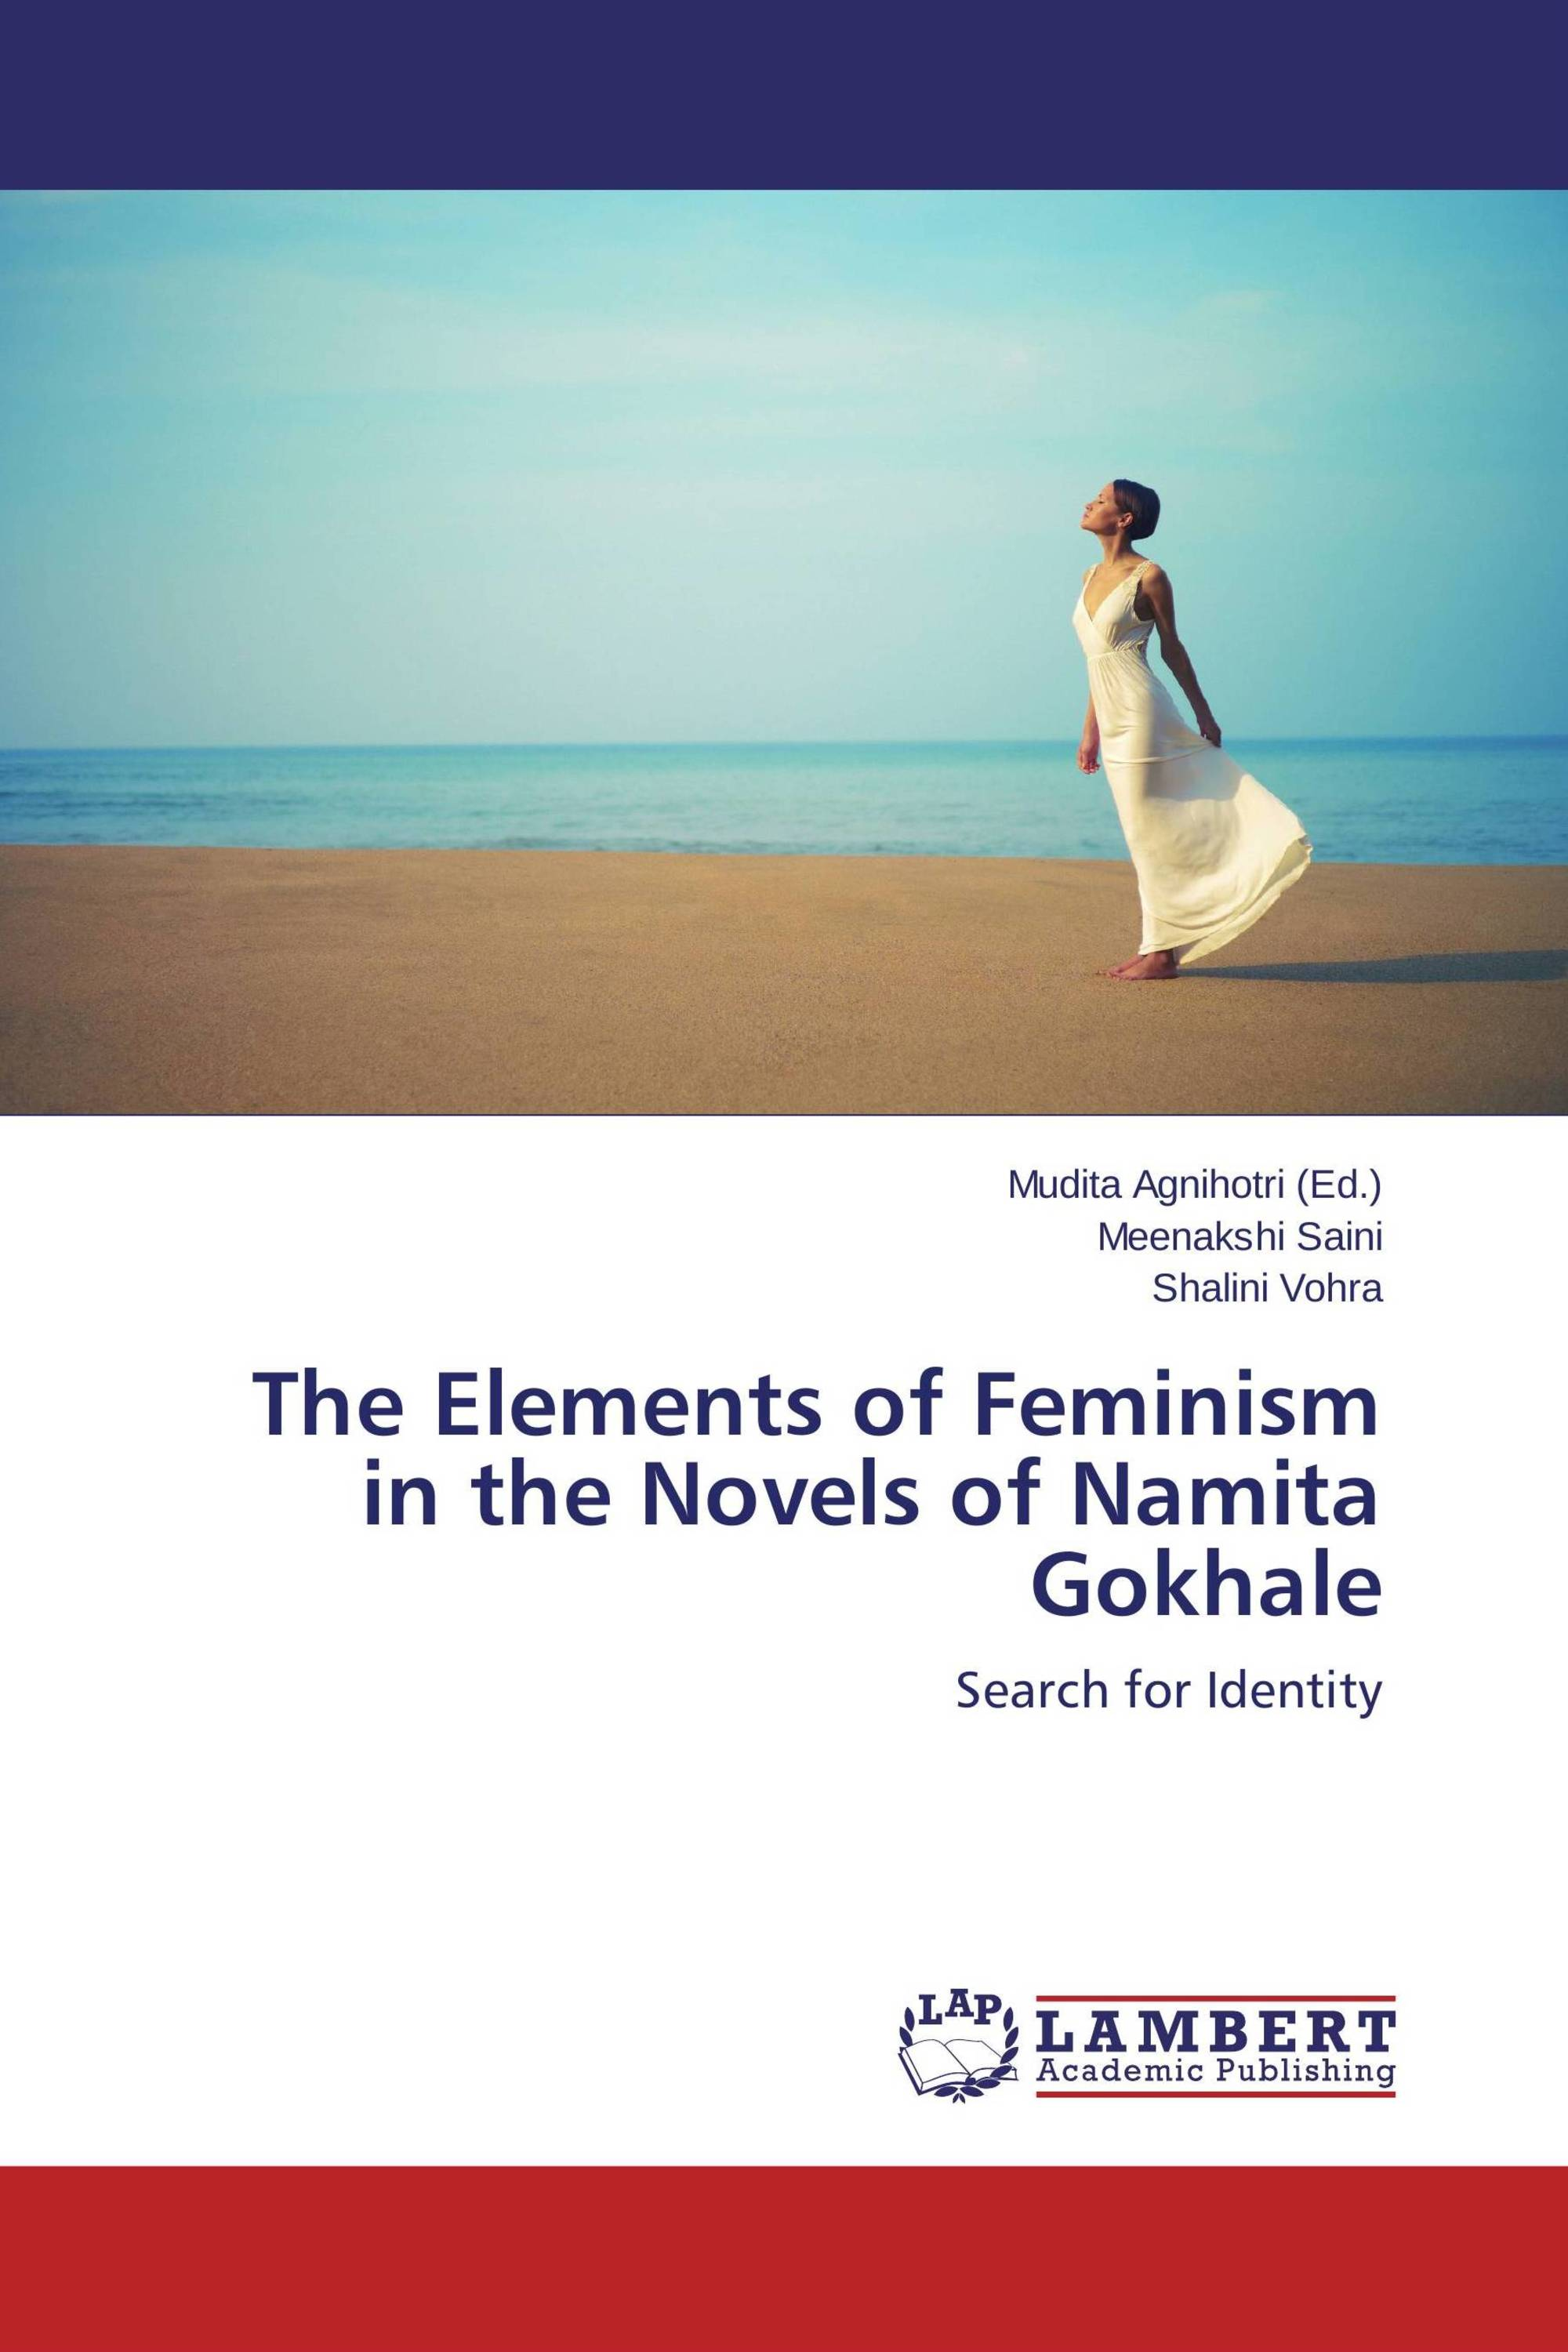 thesis statement about feminism Drafting your thesis in order to begin drafting your paper, you will need to form a working thesis statement the thesis statement is the backbone of the analysis.